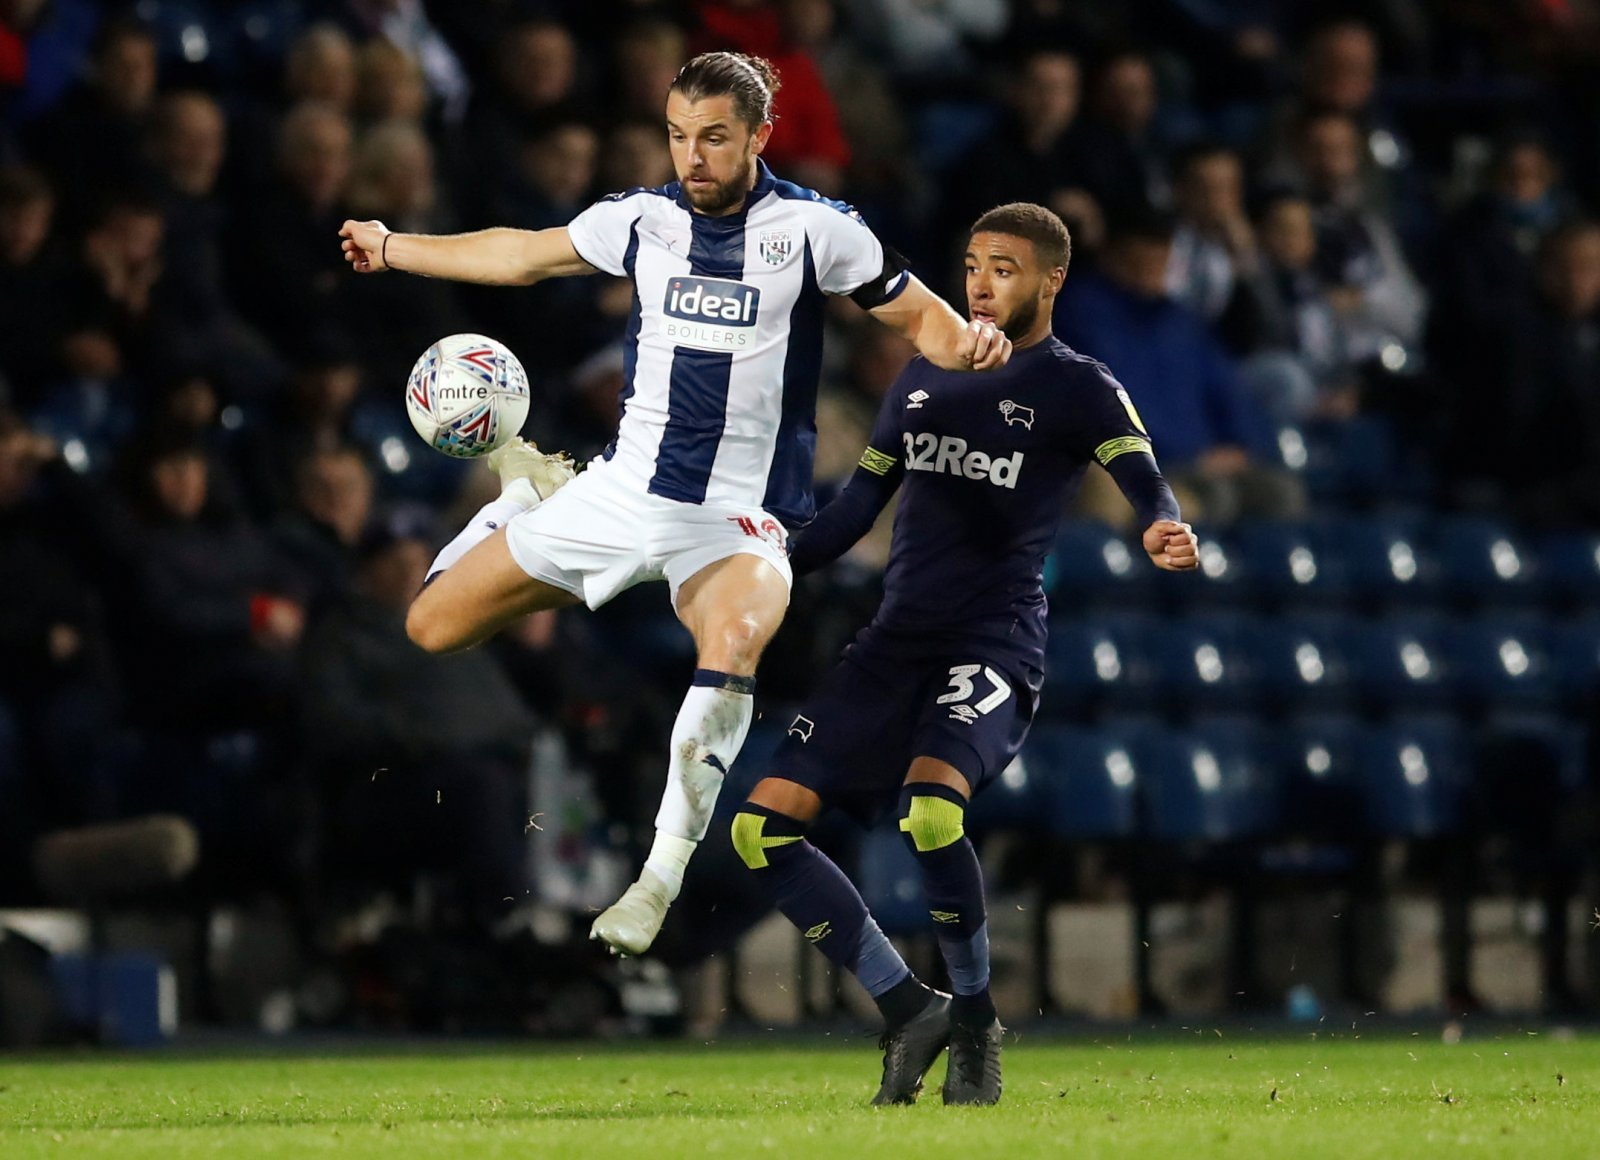 Eddie Howe can make his Bournemouth attack even stronger by signing Jay Rodriguez